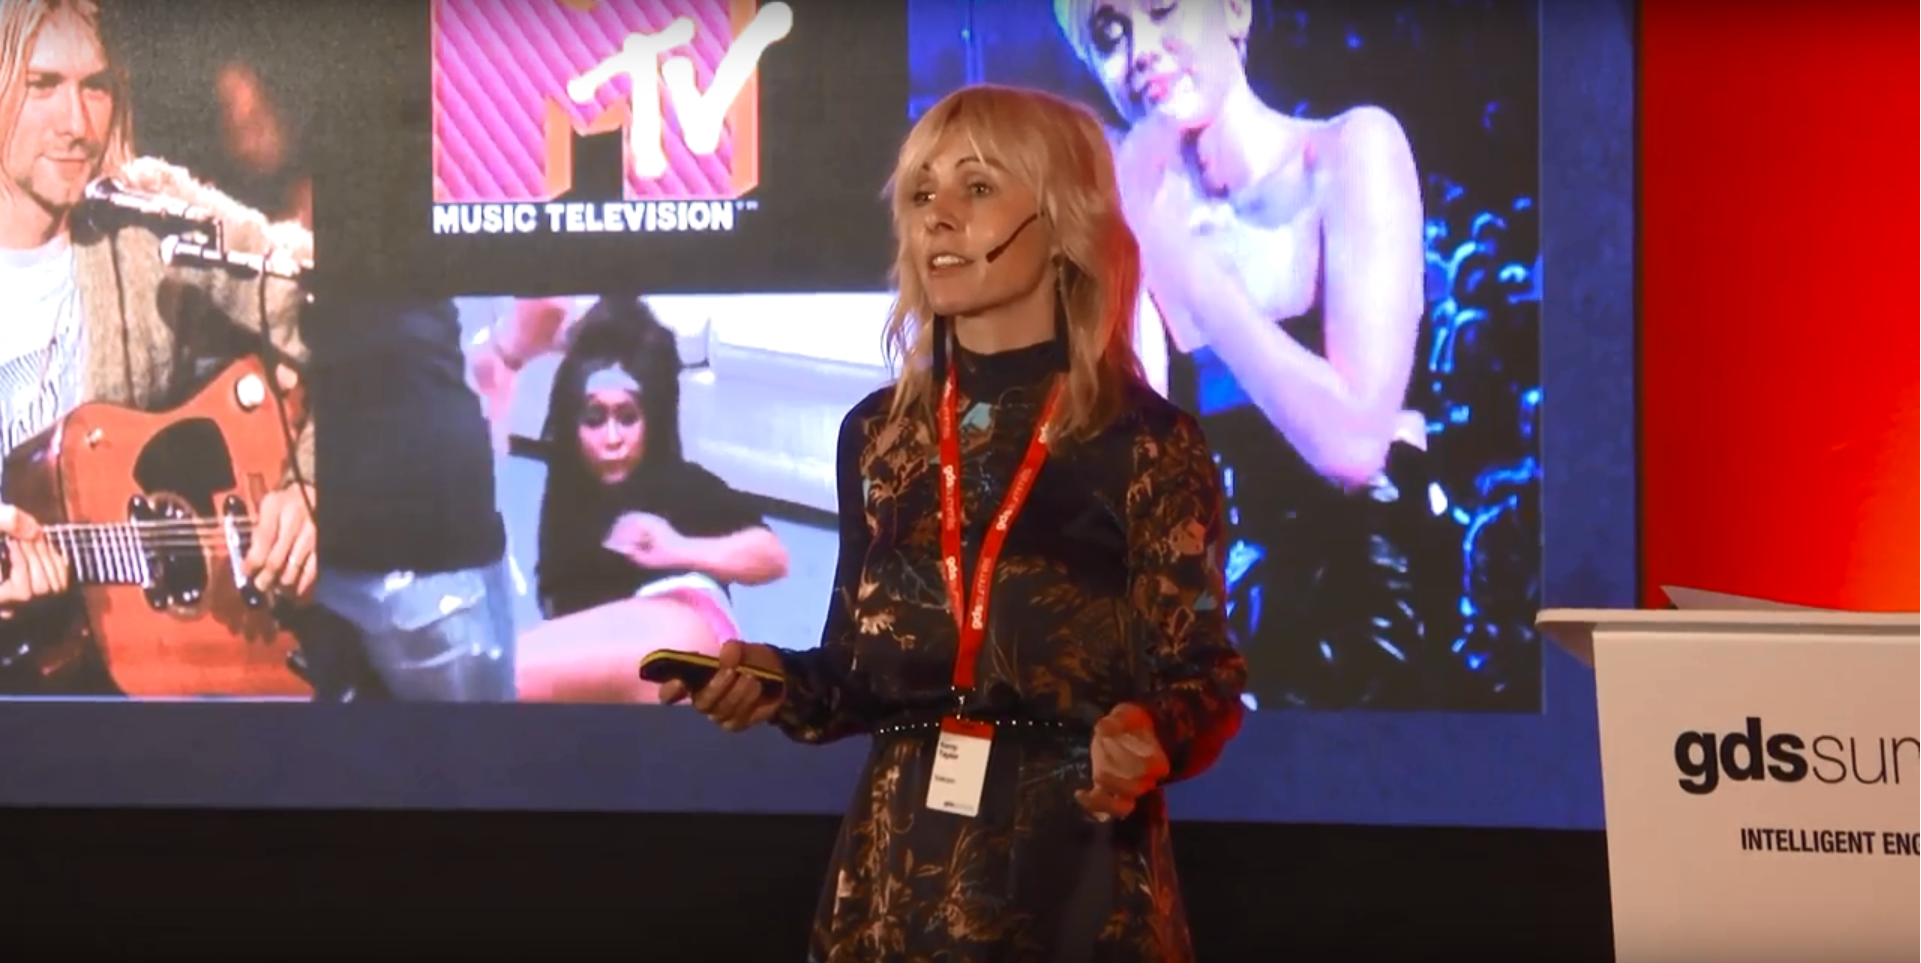 Kerry Taylor in front of projector with MTV slogan